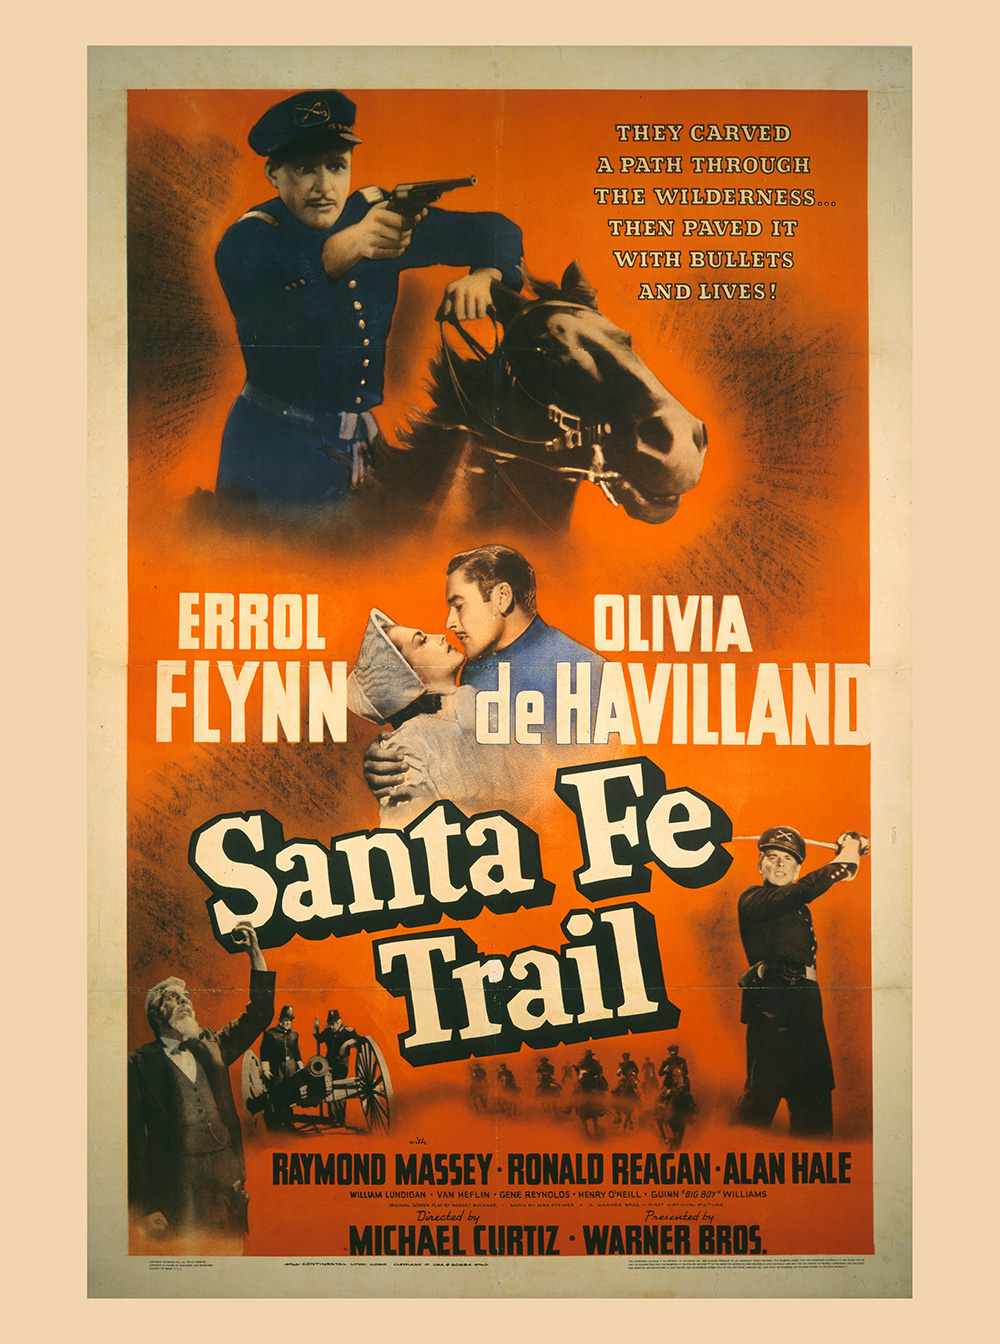 Movie Poster for Santa Fe Trail